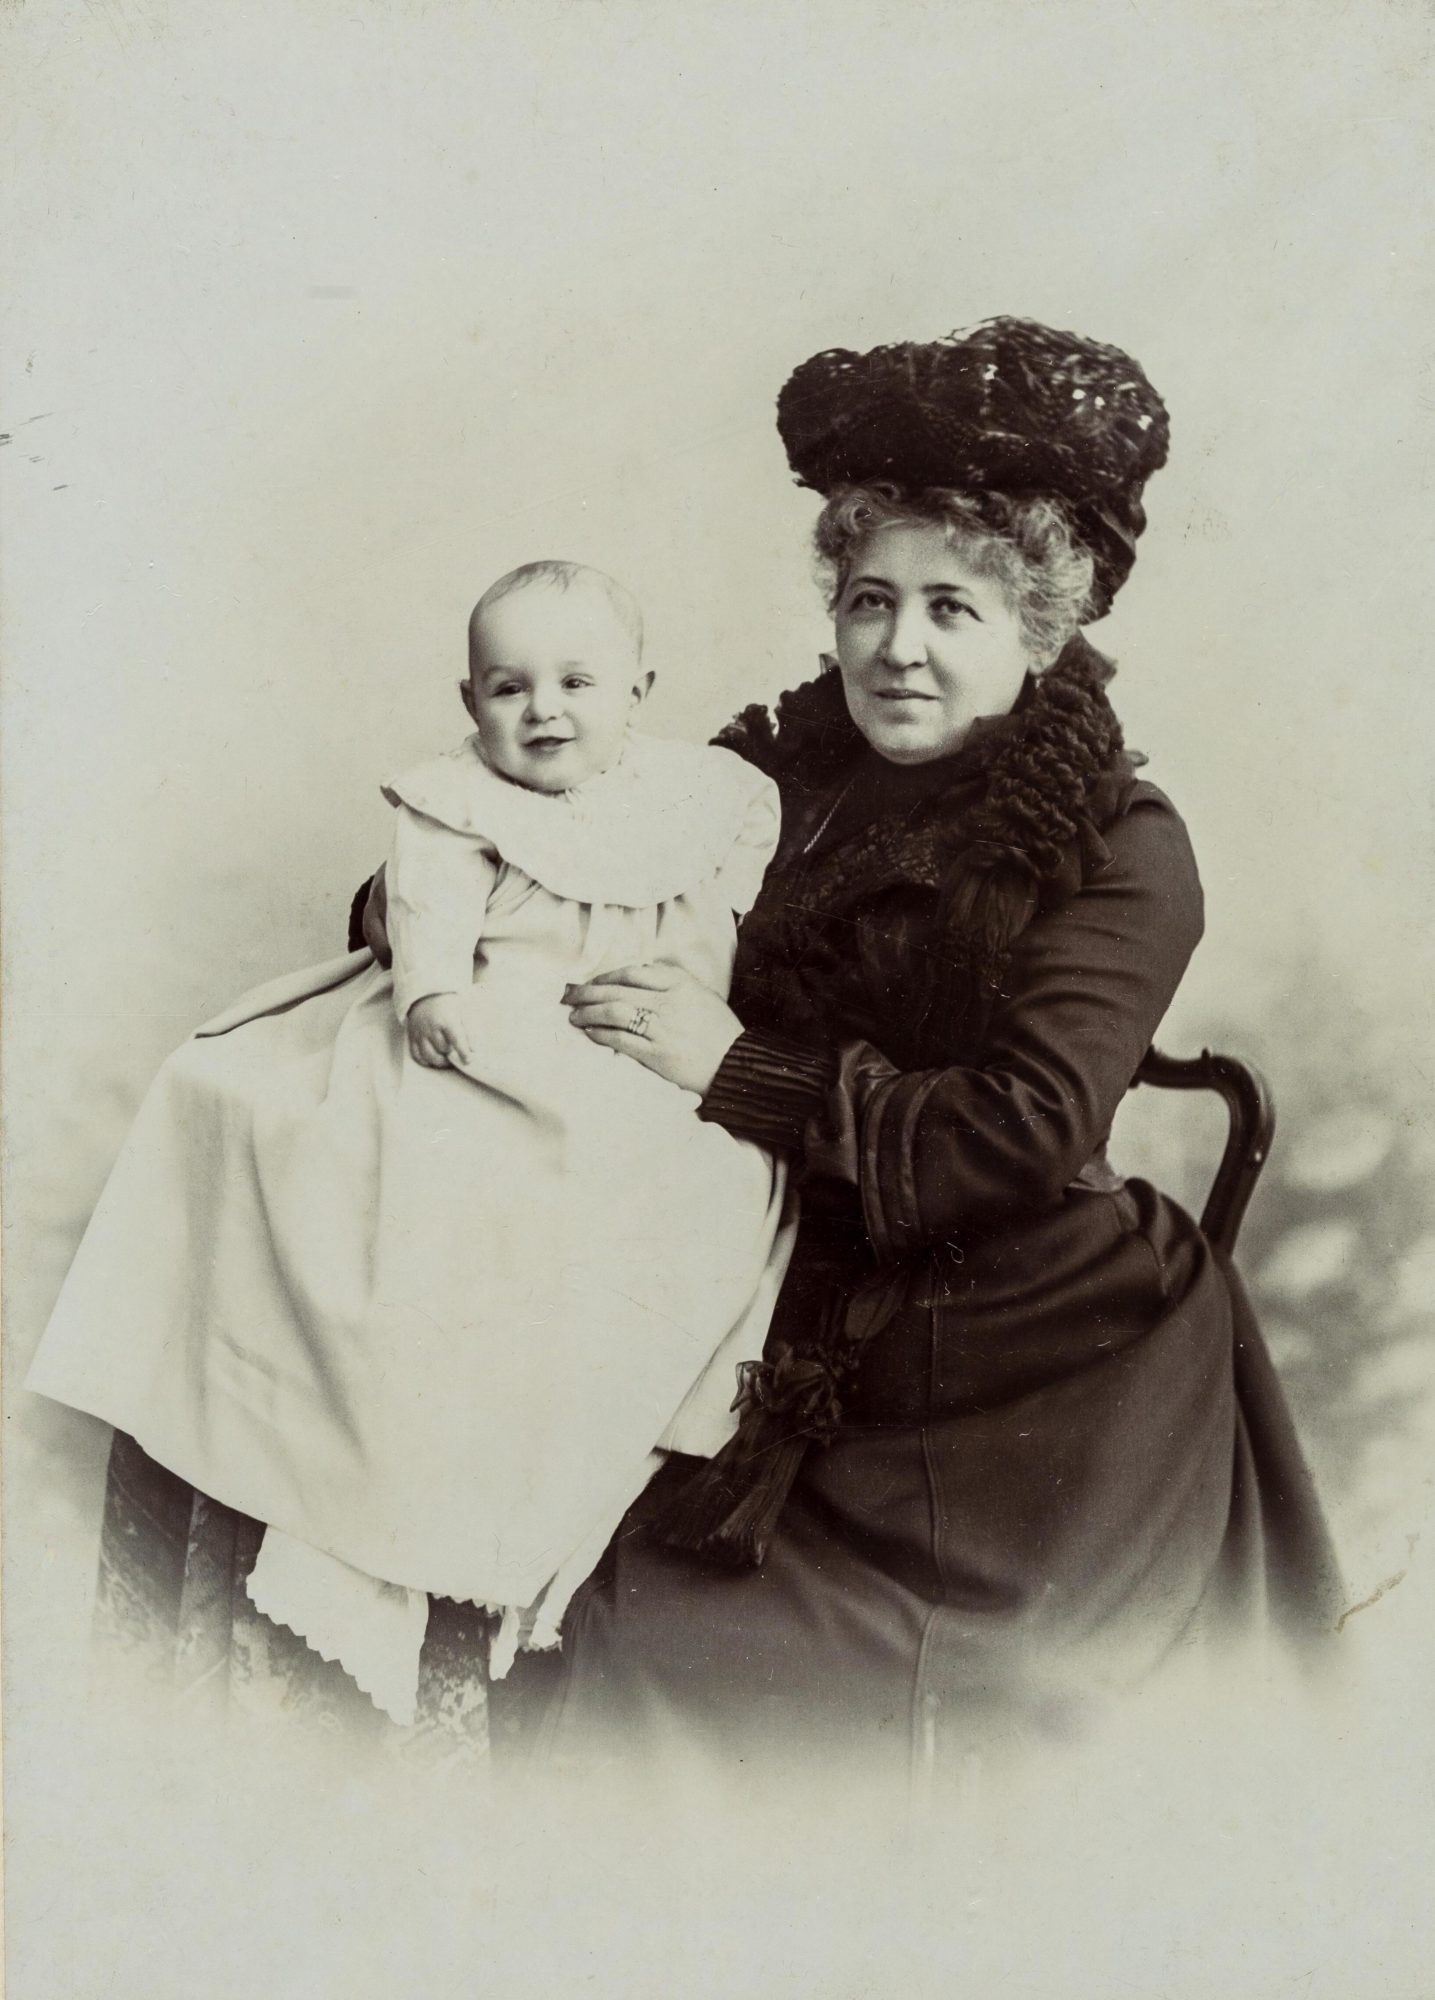 Photograph of Libussa Reizes with her baby grandson, Otto